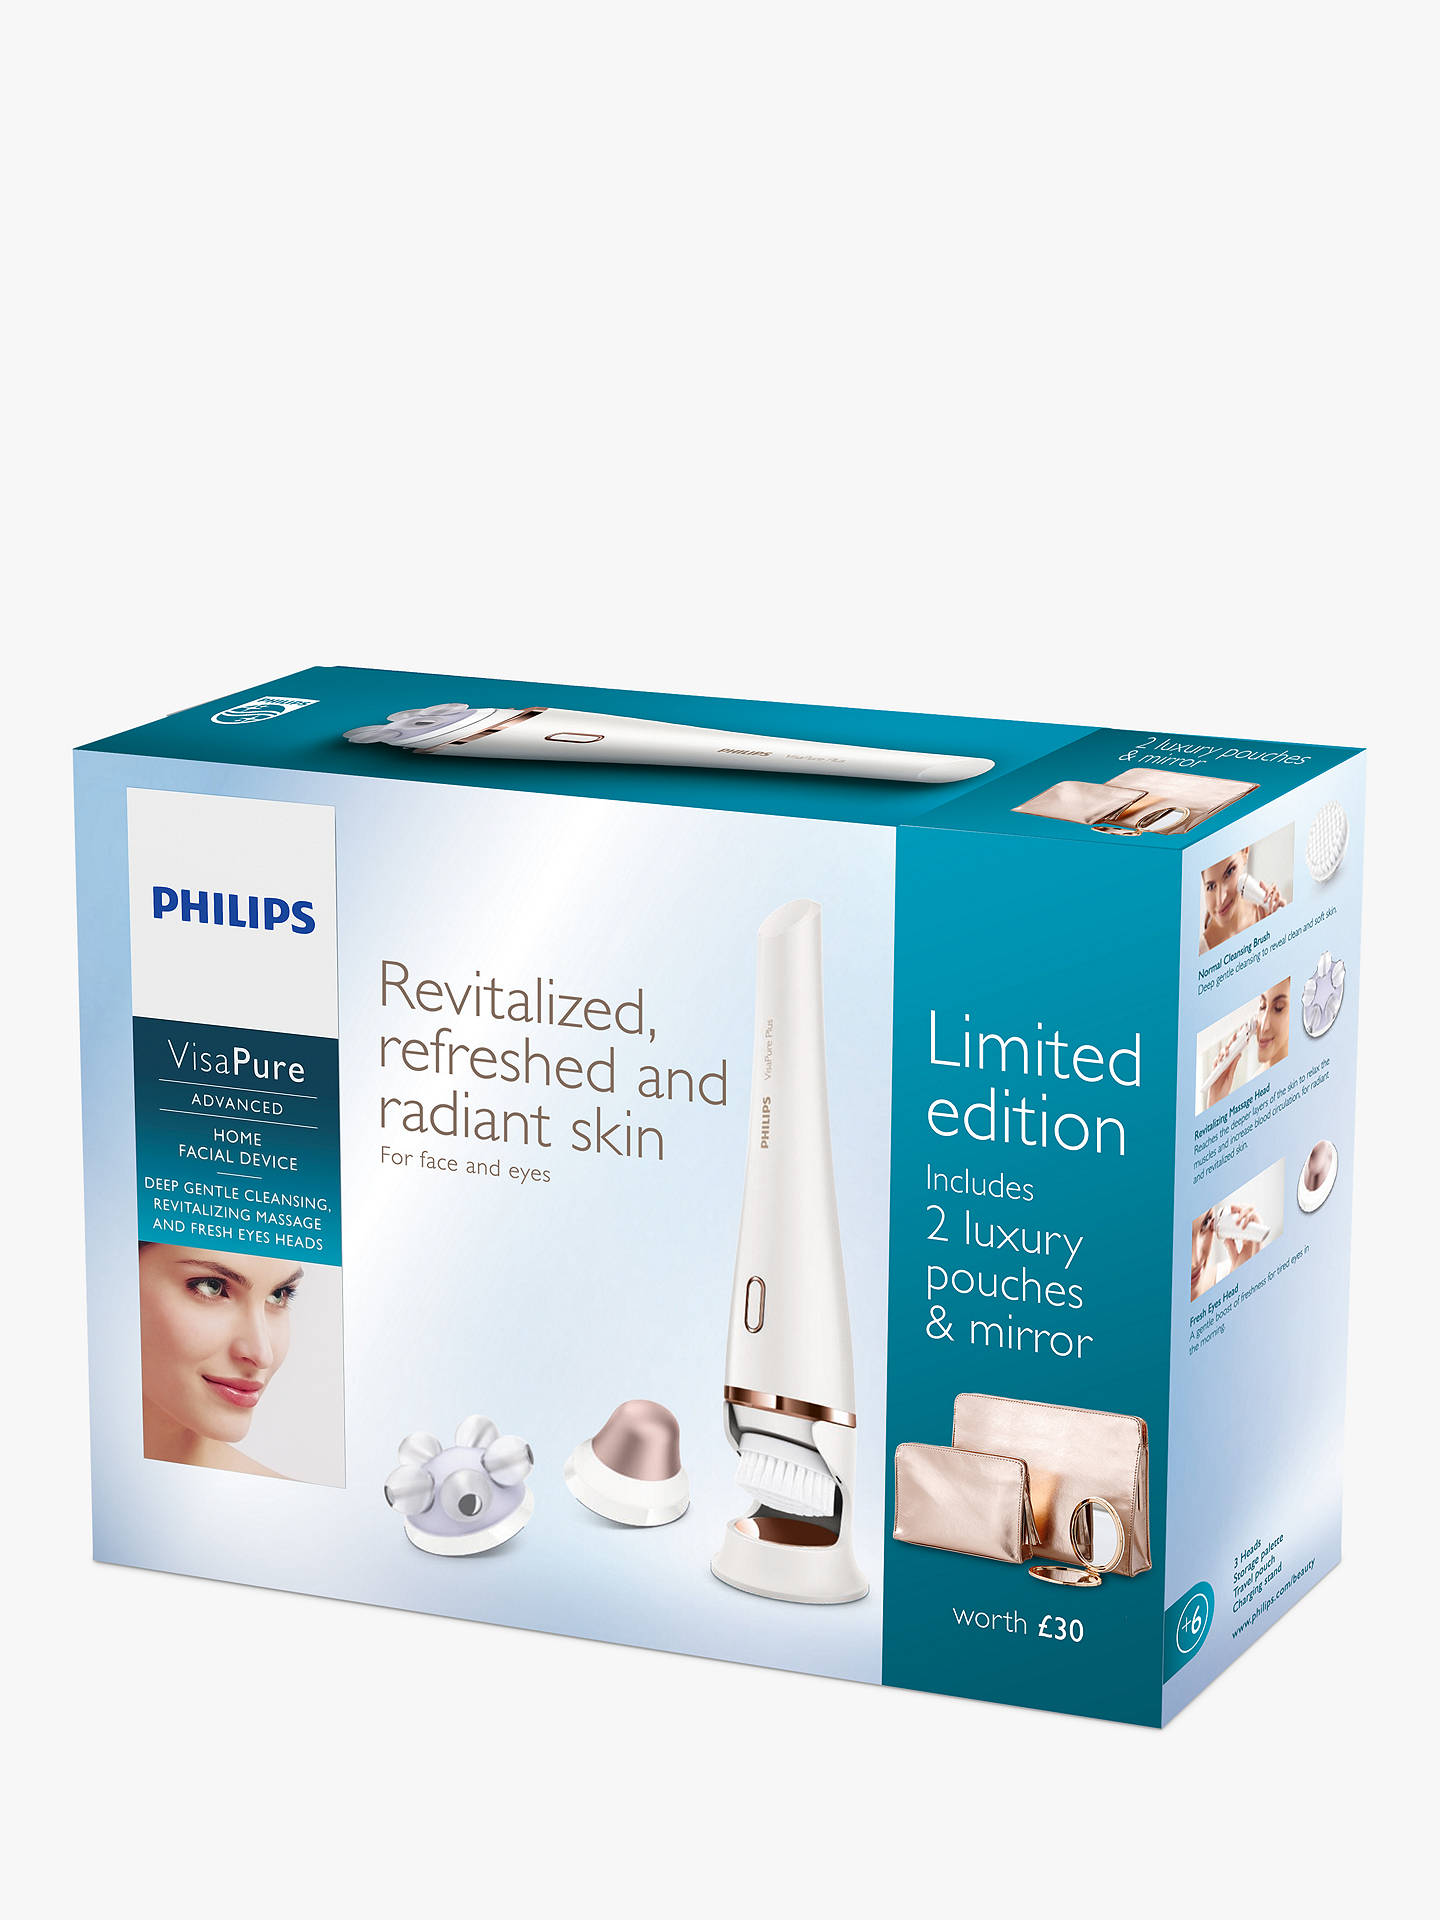 Buy Philips SC5370/10 VisaPure Advanced 3-in-1 Home Facial Device, White Online at johnlewis.com